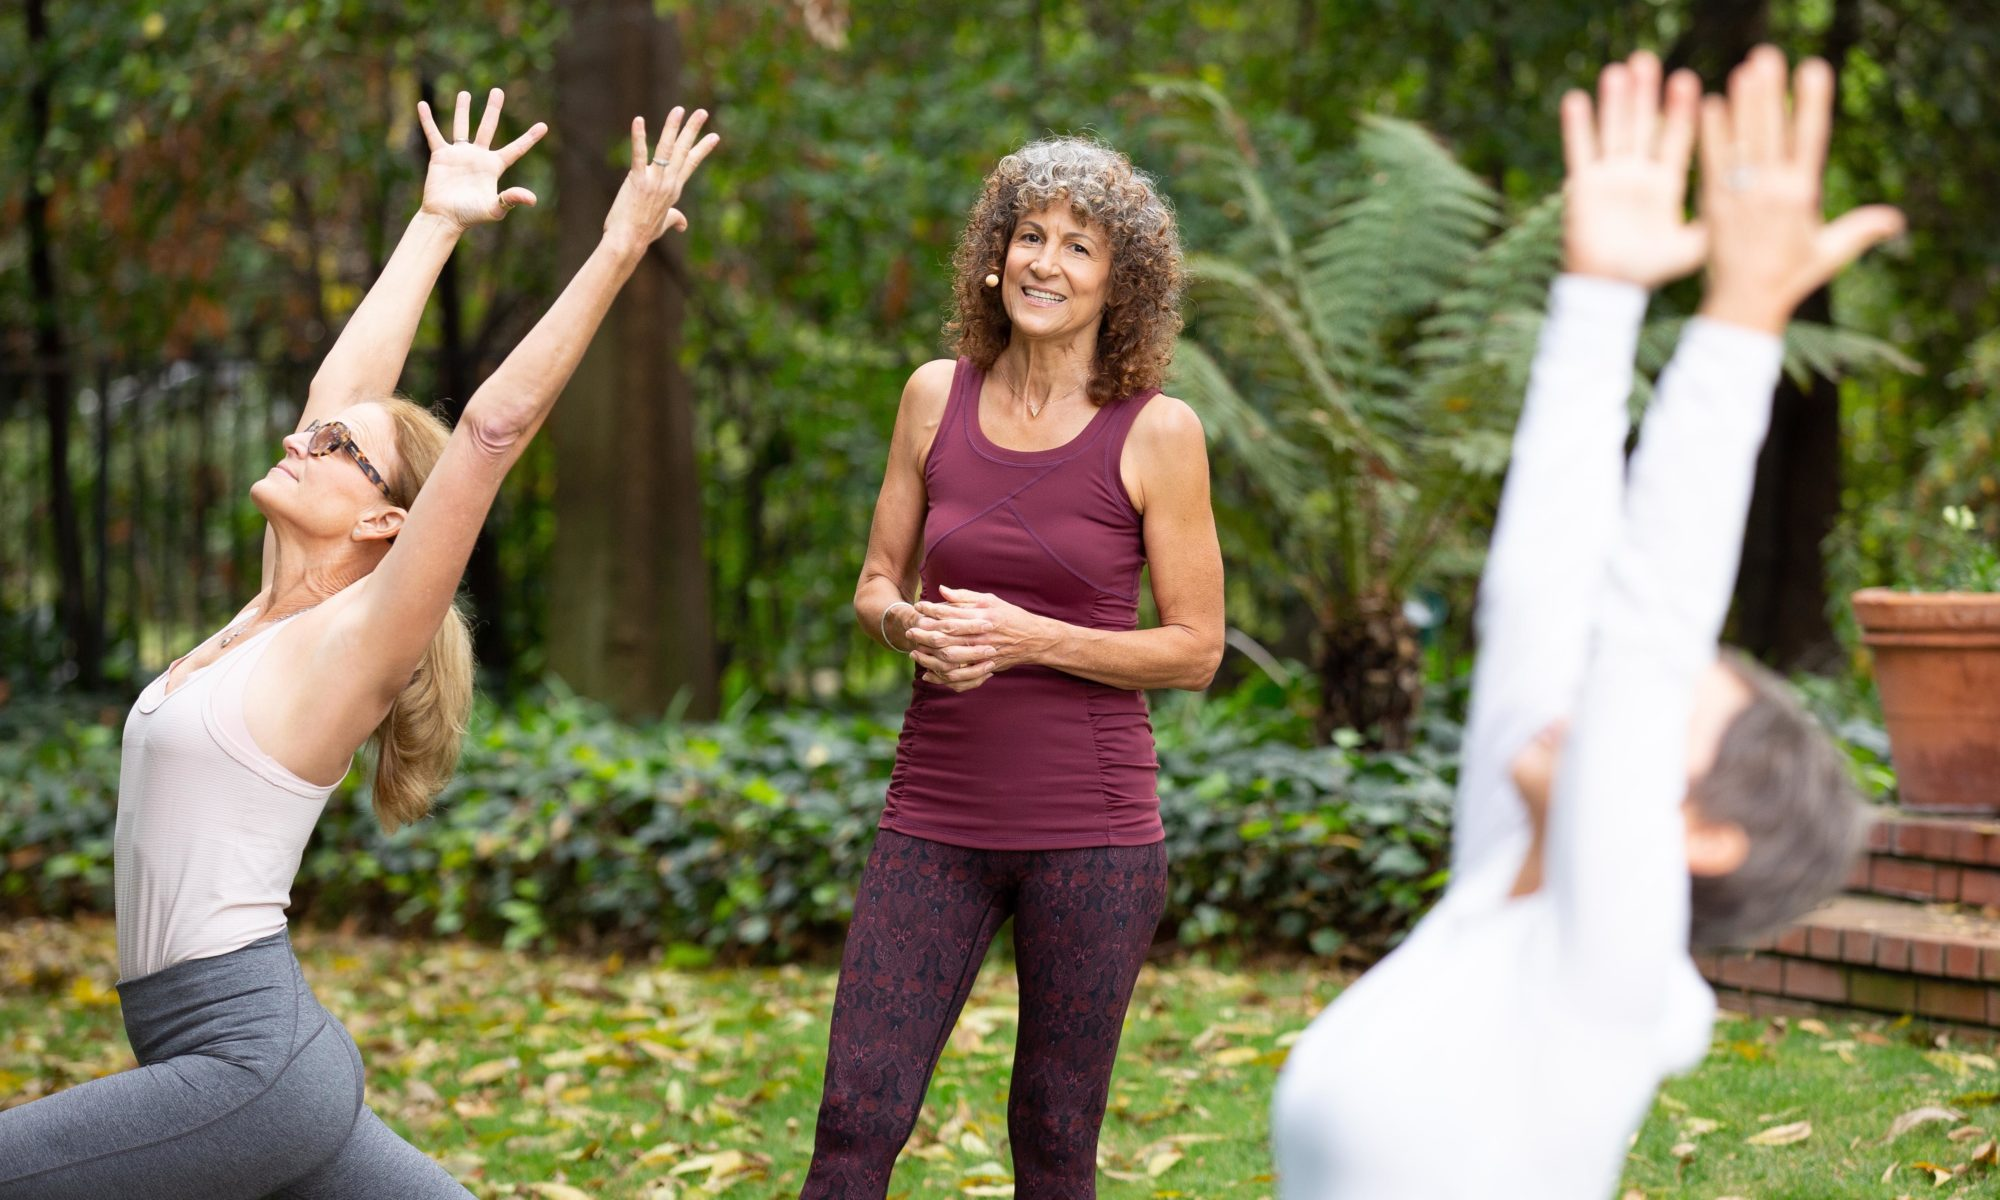 Desiree standing among yoga students outdoor in a lush garden area